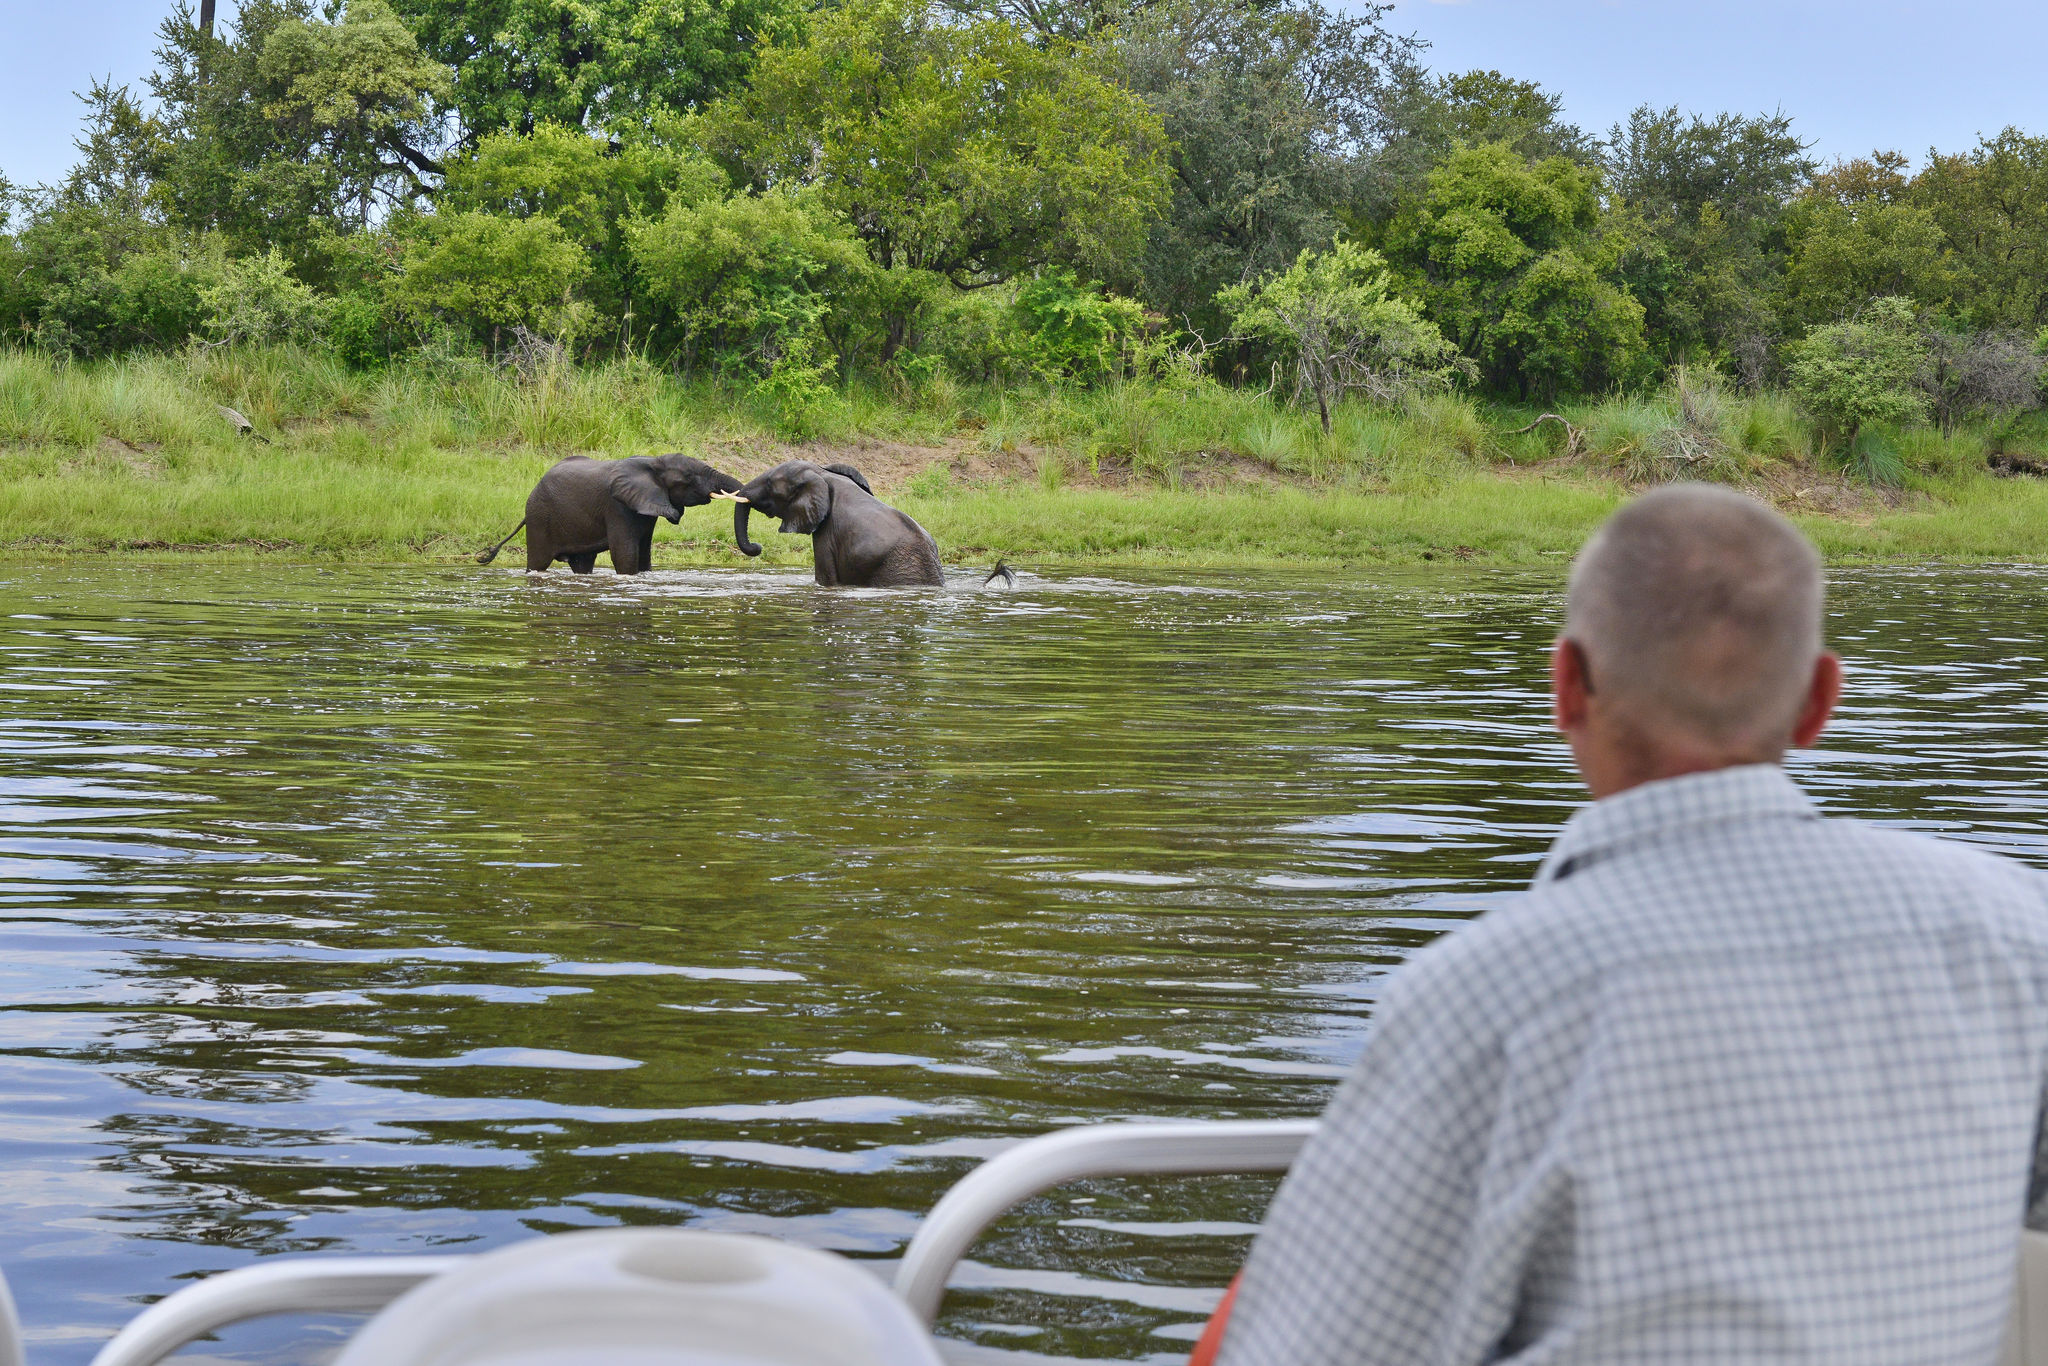 man watches elephants fighting from boat